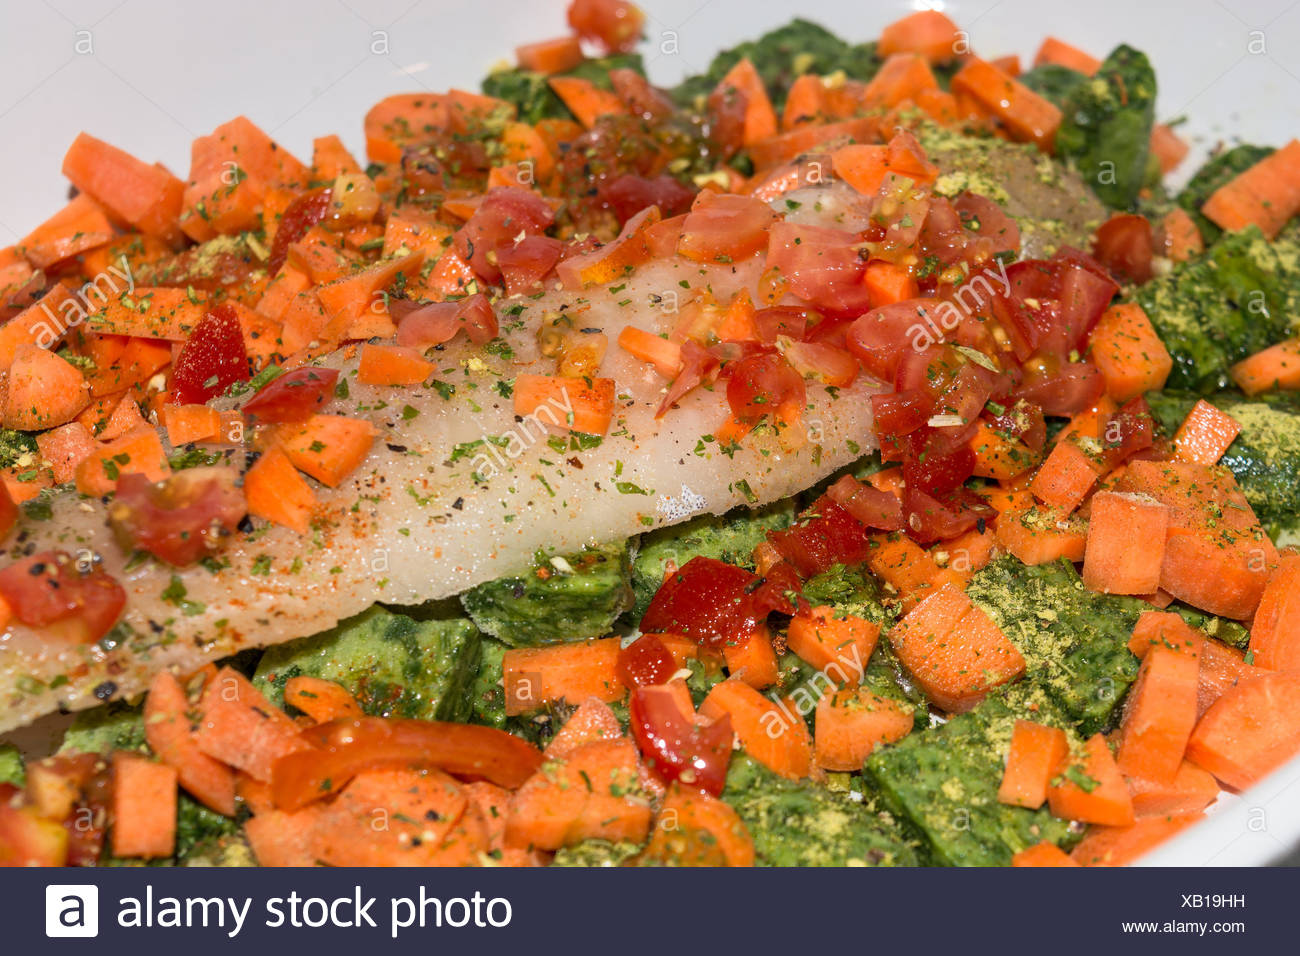 Healthy food, compilation fish with vegetables - Stock Image